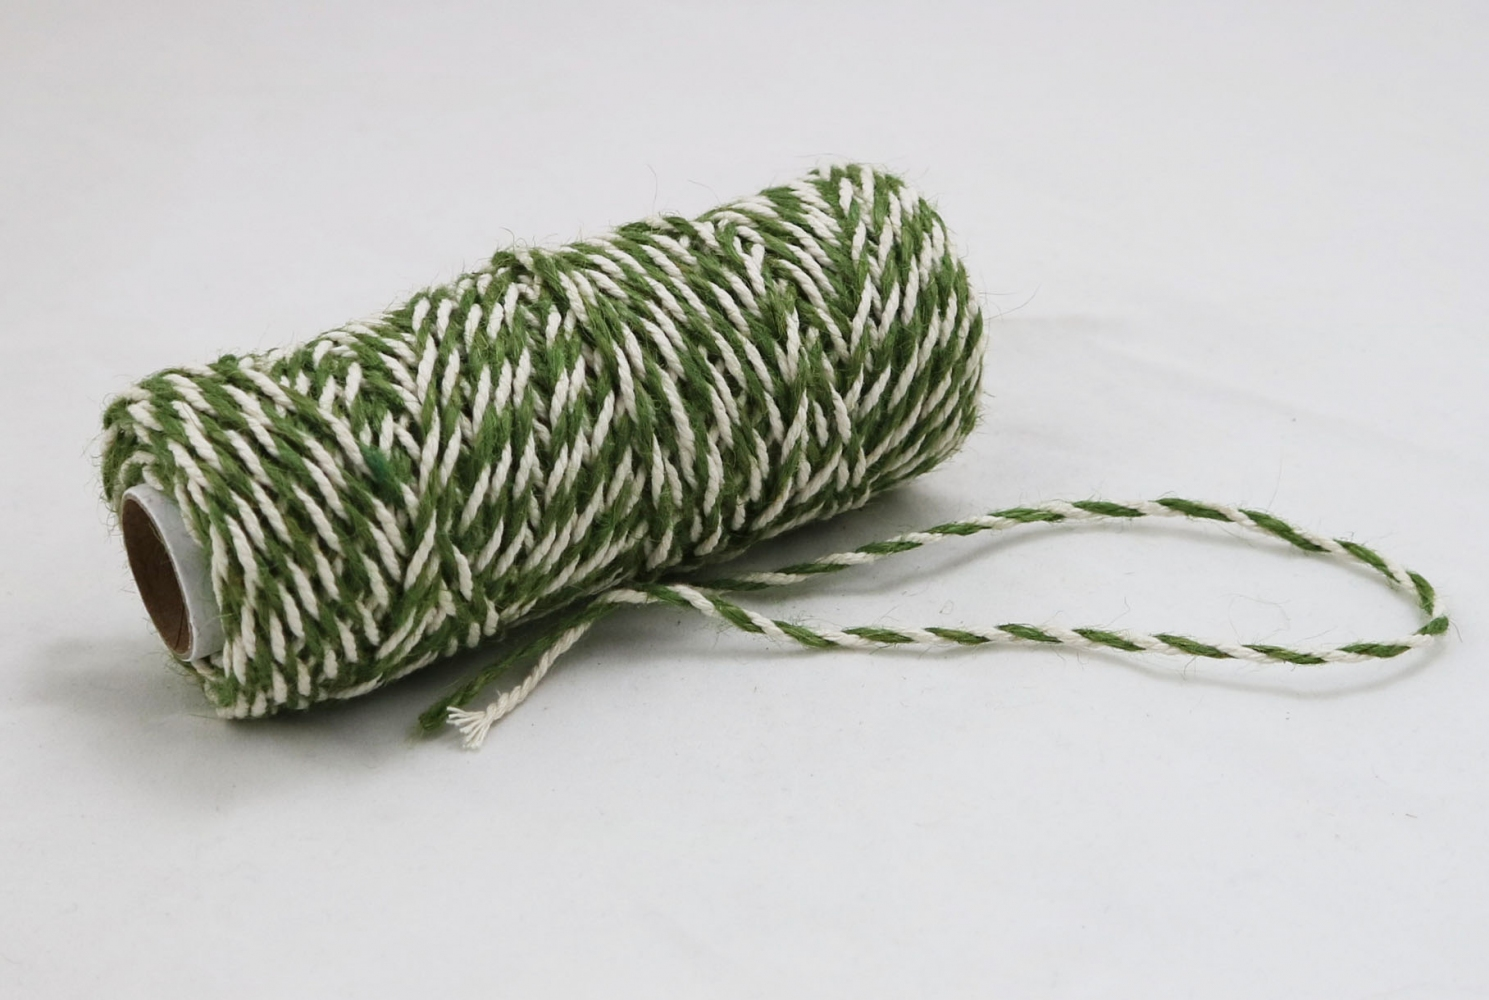 Jute+cotton cord, green-white color, 50 meters - 2